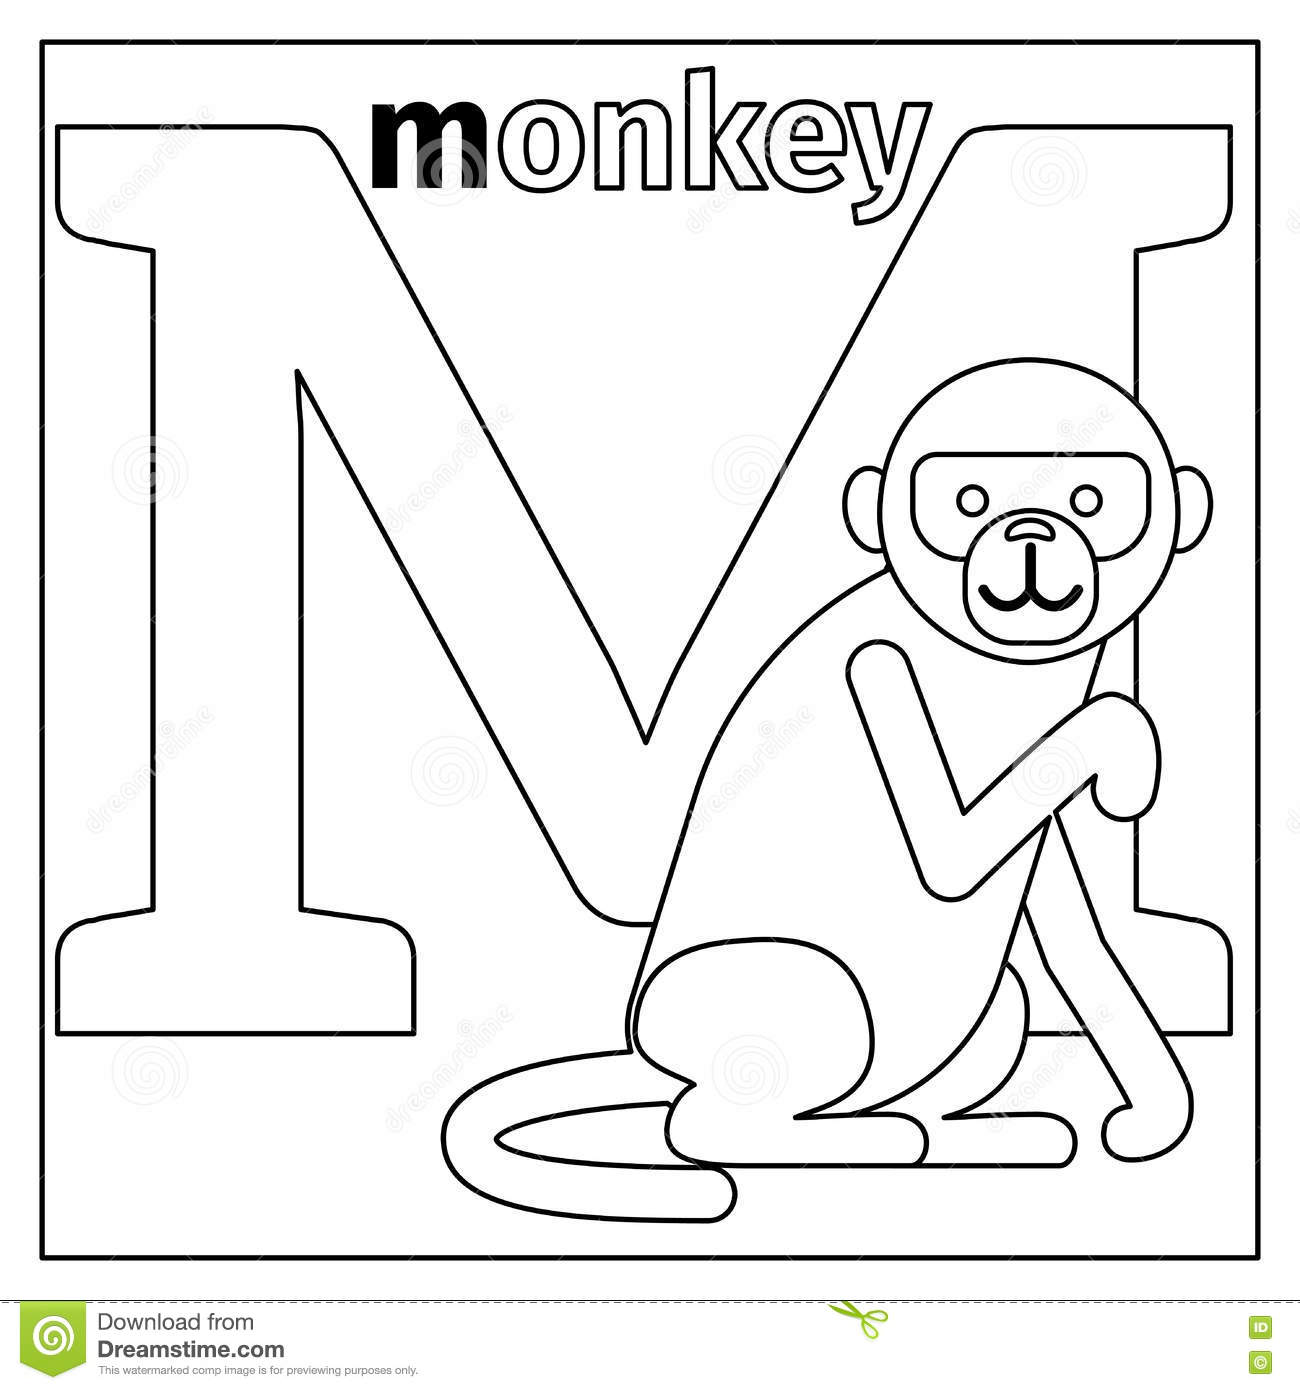 Coloring book pages letter m - Monkey Letter M Coloring Page Stock Vector Image 79426522